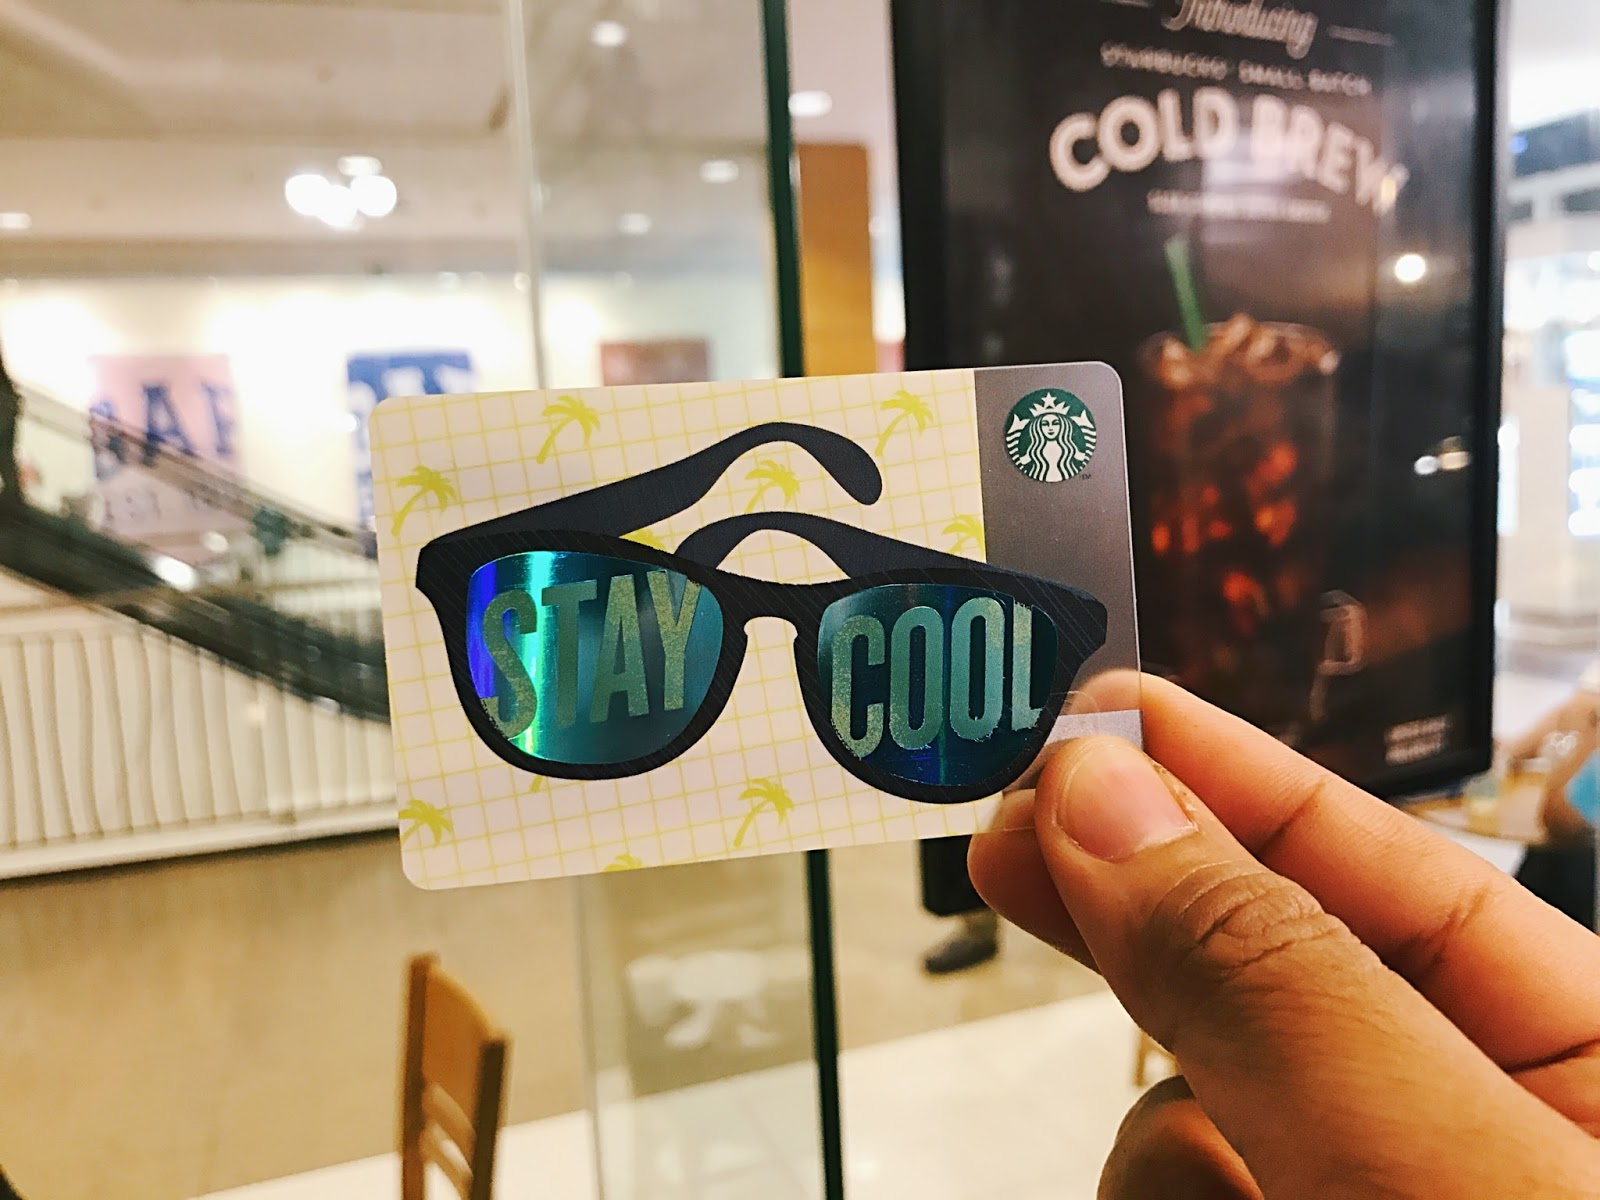 Starbucks Stay Cool Rewards Card